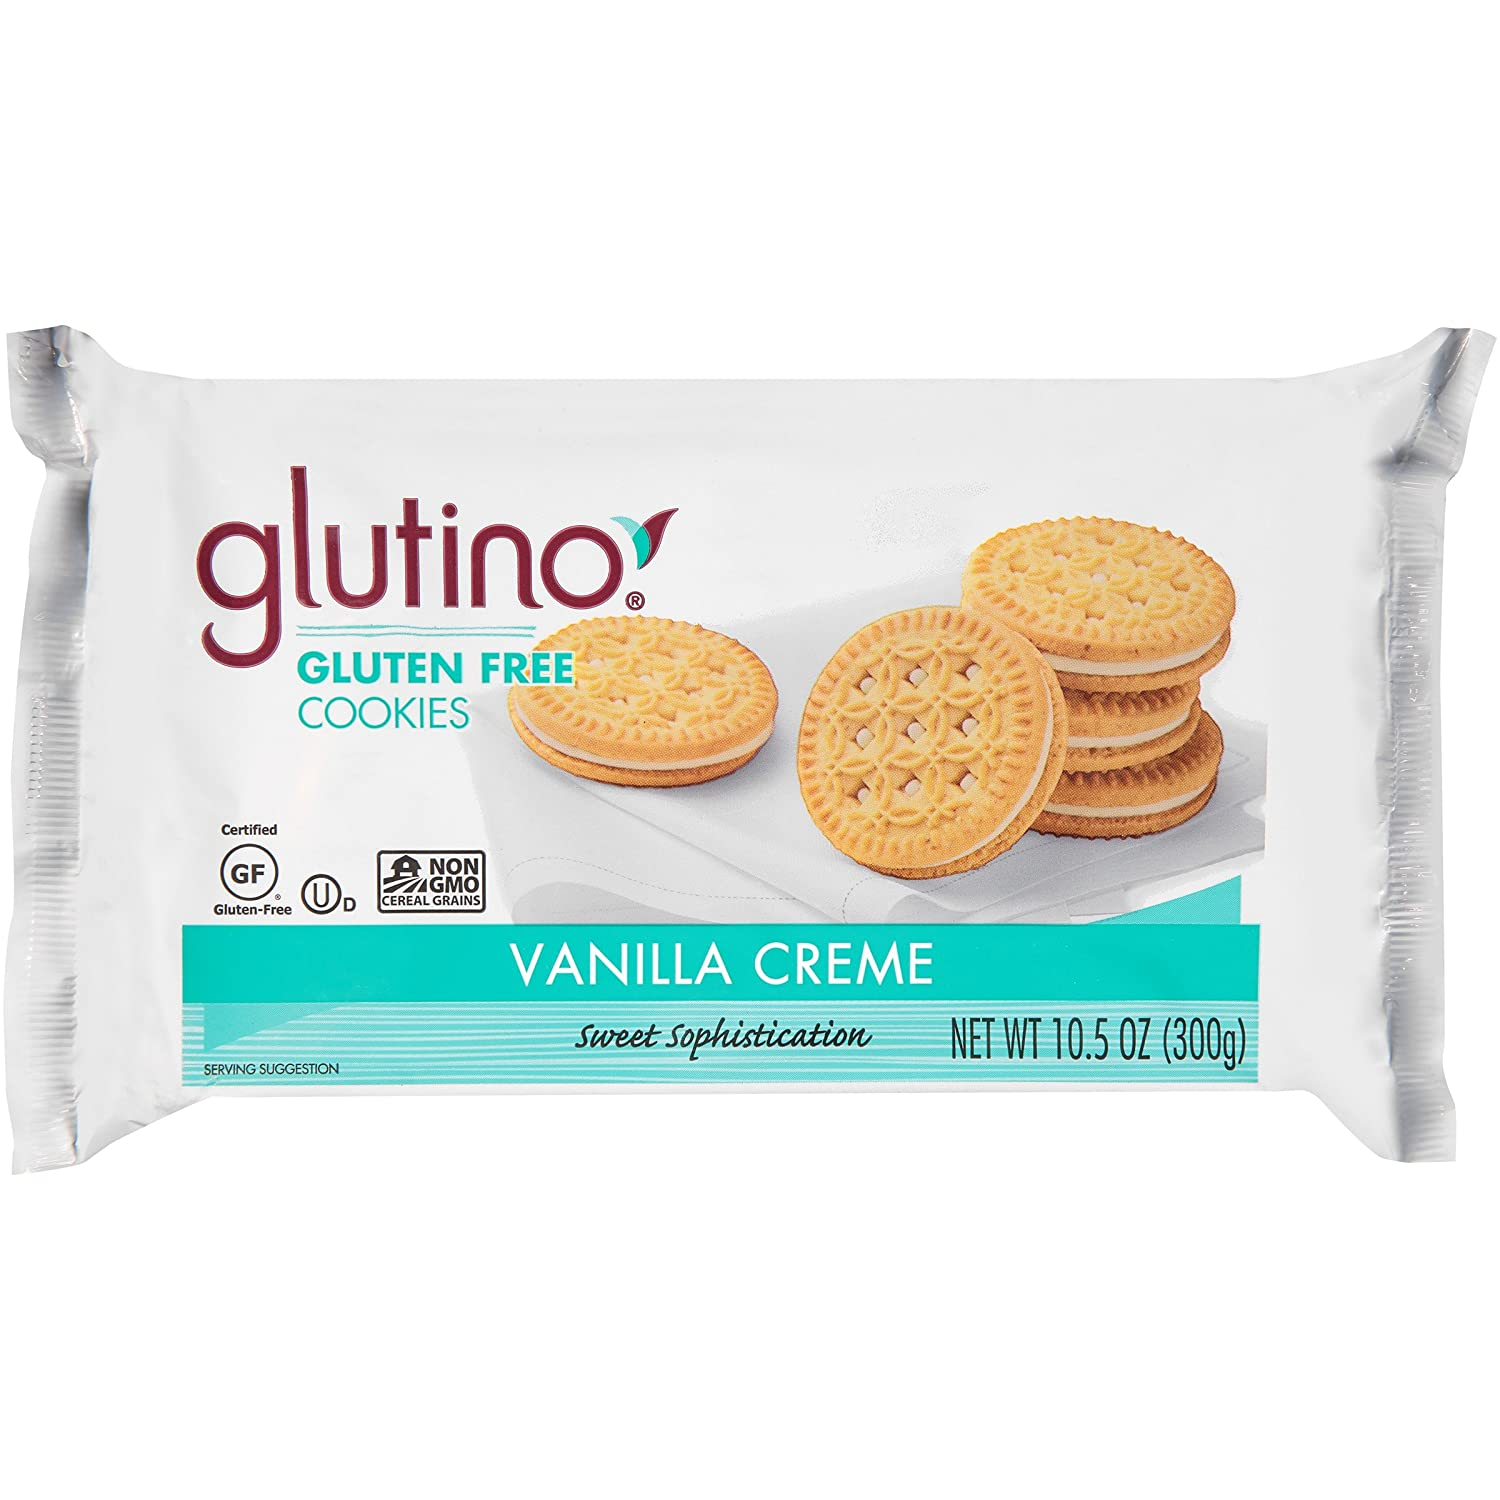 Glutino Gluten Free Vanilla Creme Cookies, Decadent Cookie,10.5 Ounce(Pack of 6)